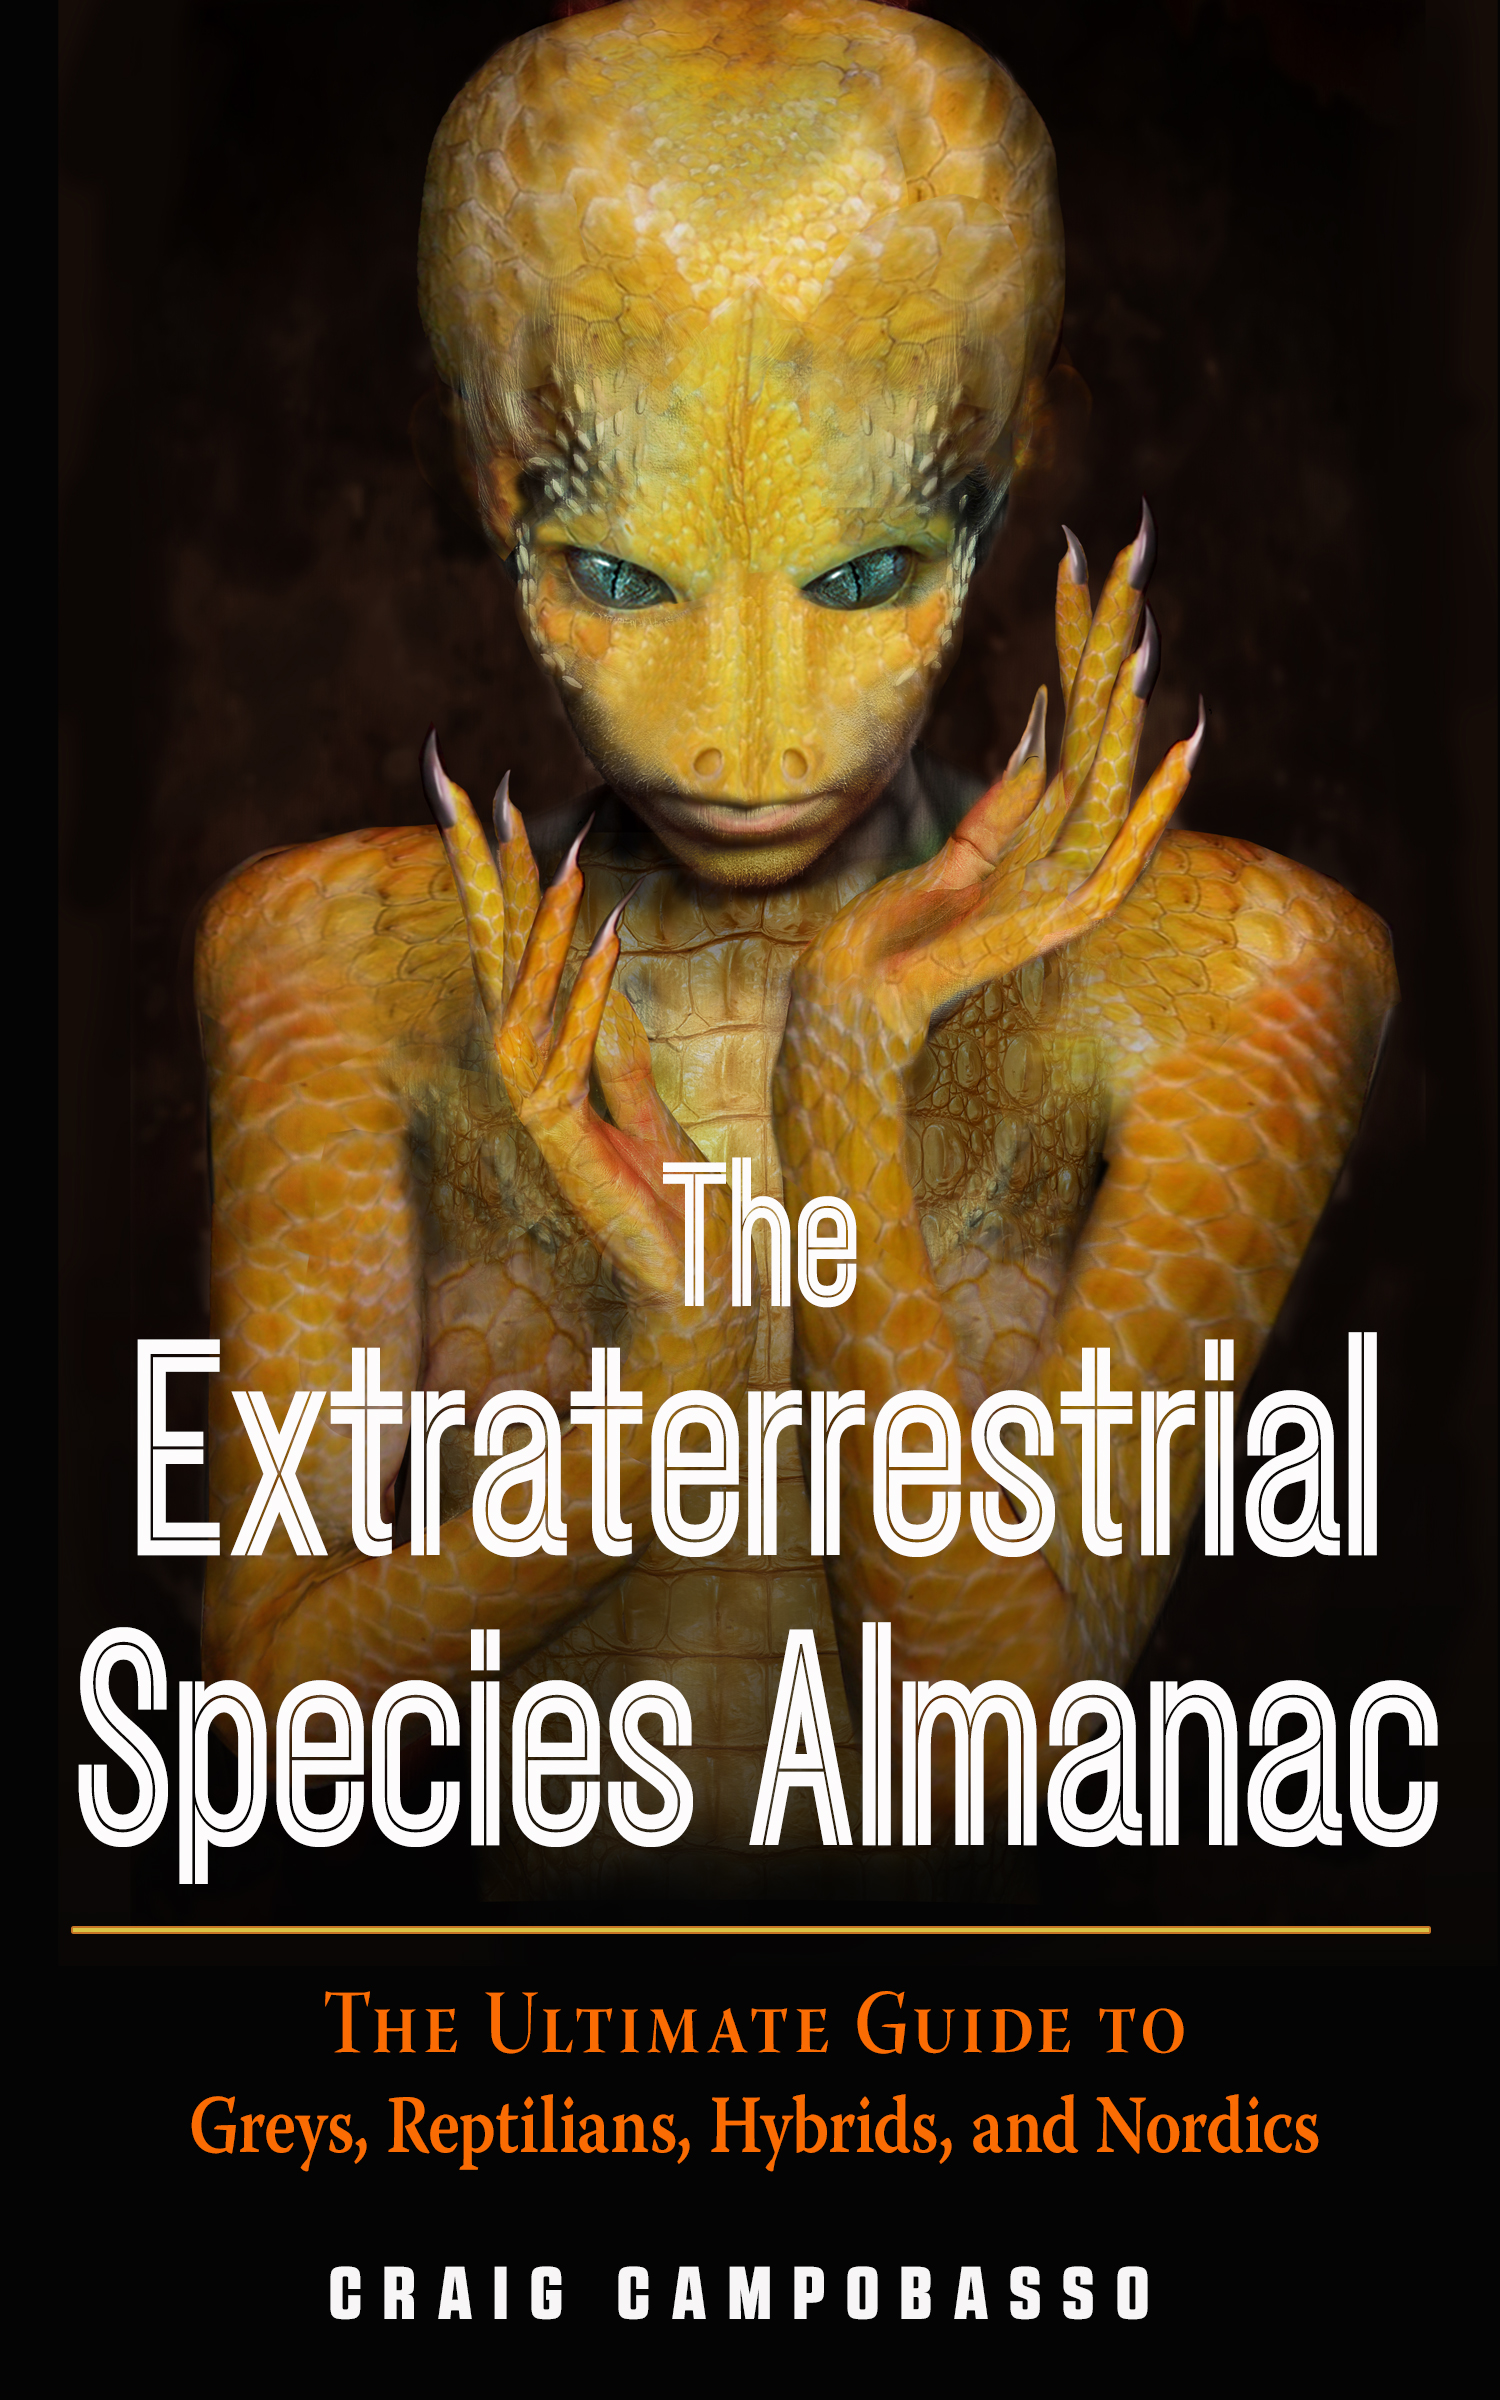 [PDF] [EPUB] The Extraterrestrial Species Almanac: The Ultimate Guide to Greys, Reptilians, Hybrids, and Nordics Download by Craig Campobasso